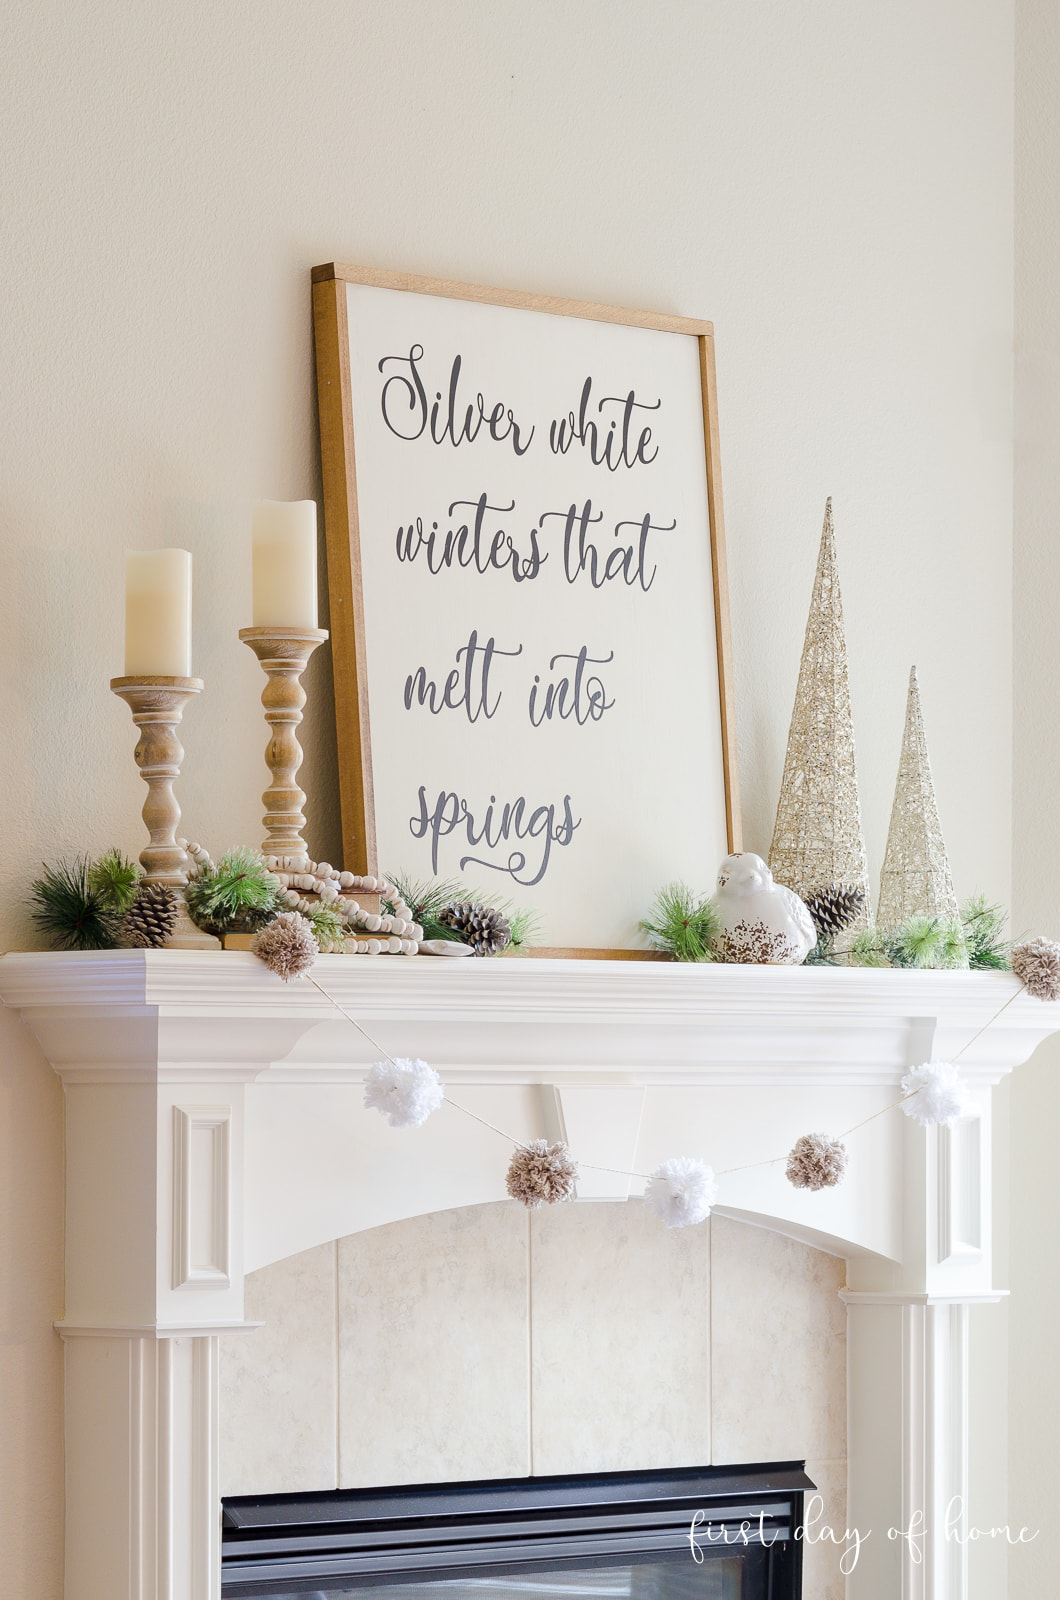 Winter mantel decor ideas with DIY farmhouse sign, pom pom garland and candles